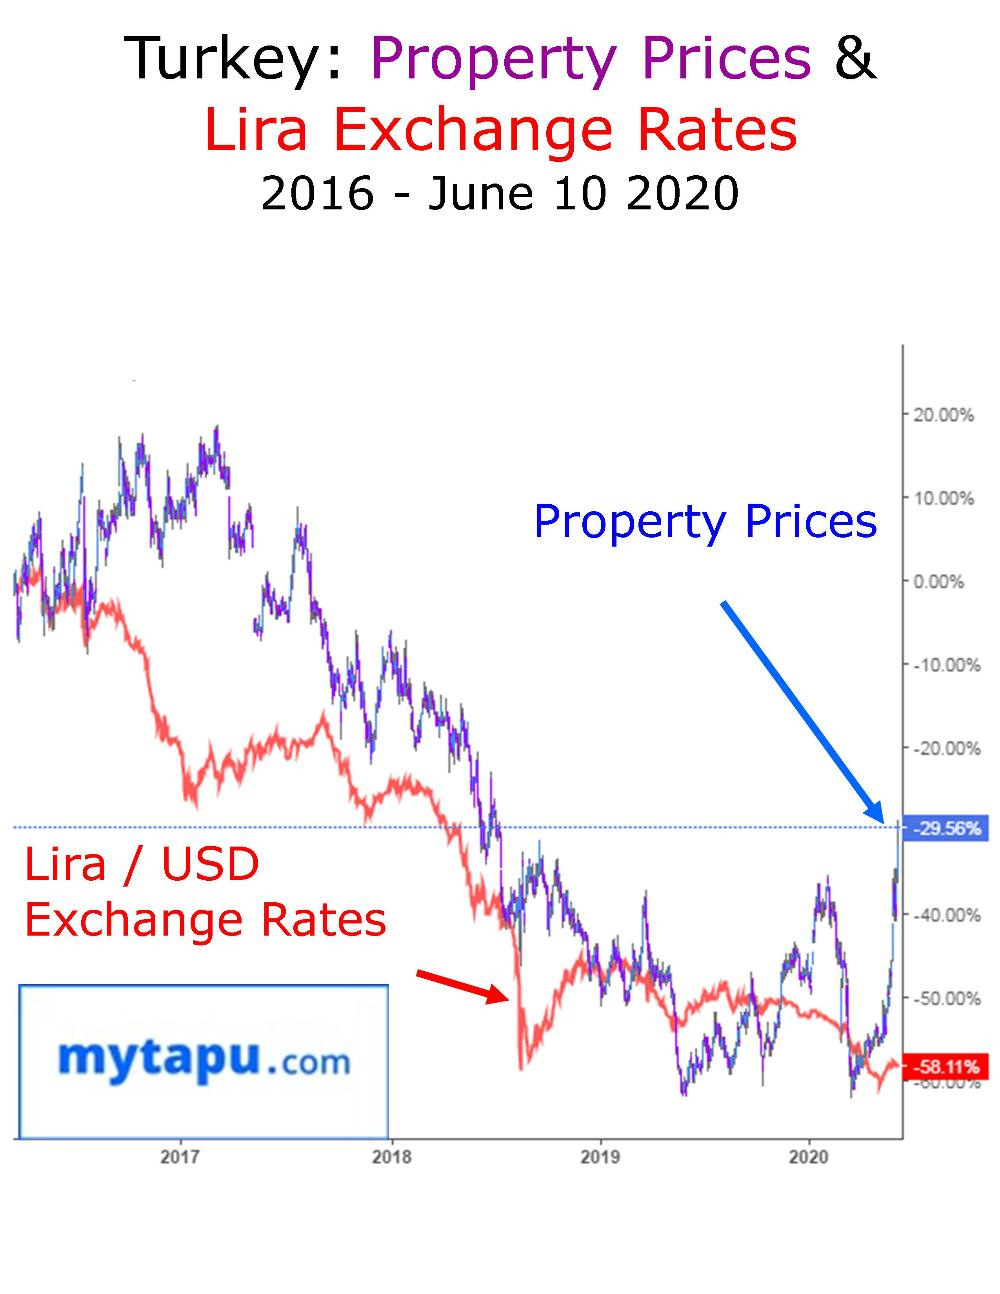 Turkey Property Prices and Exchange Rates 2016 - June 2020 Graphic Chart eng